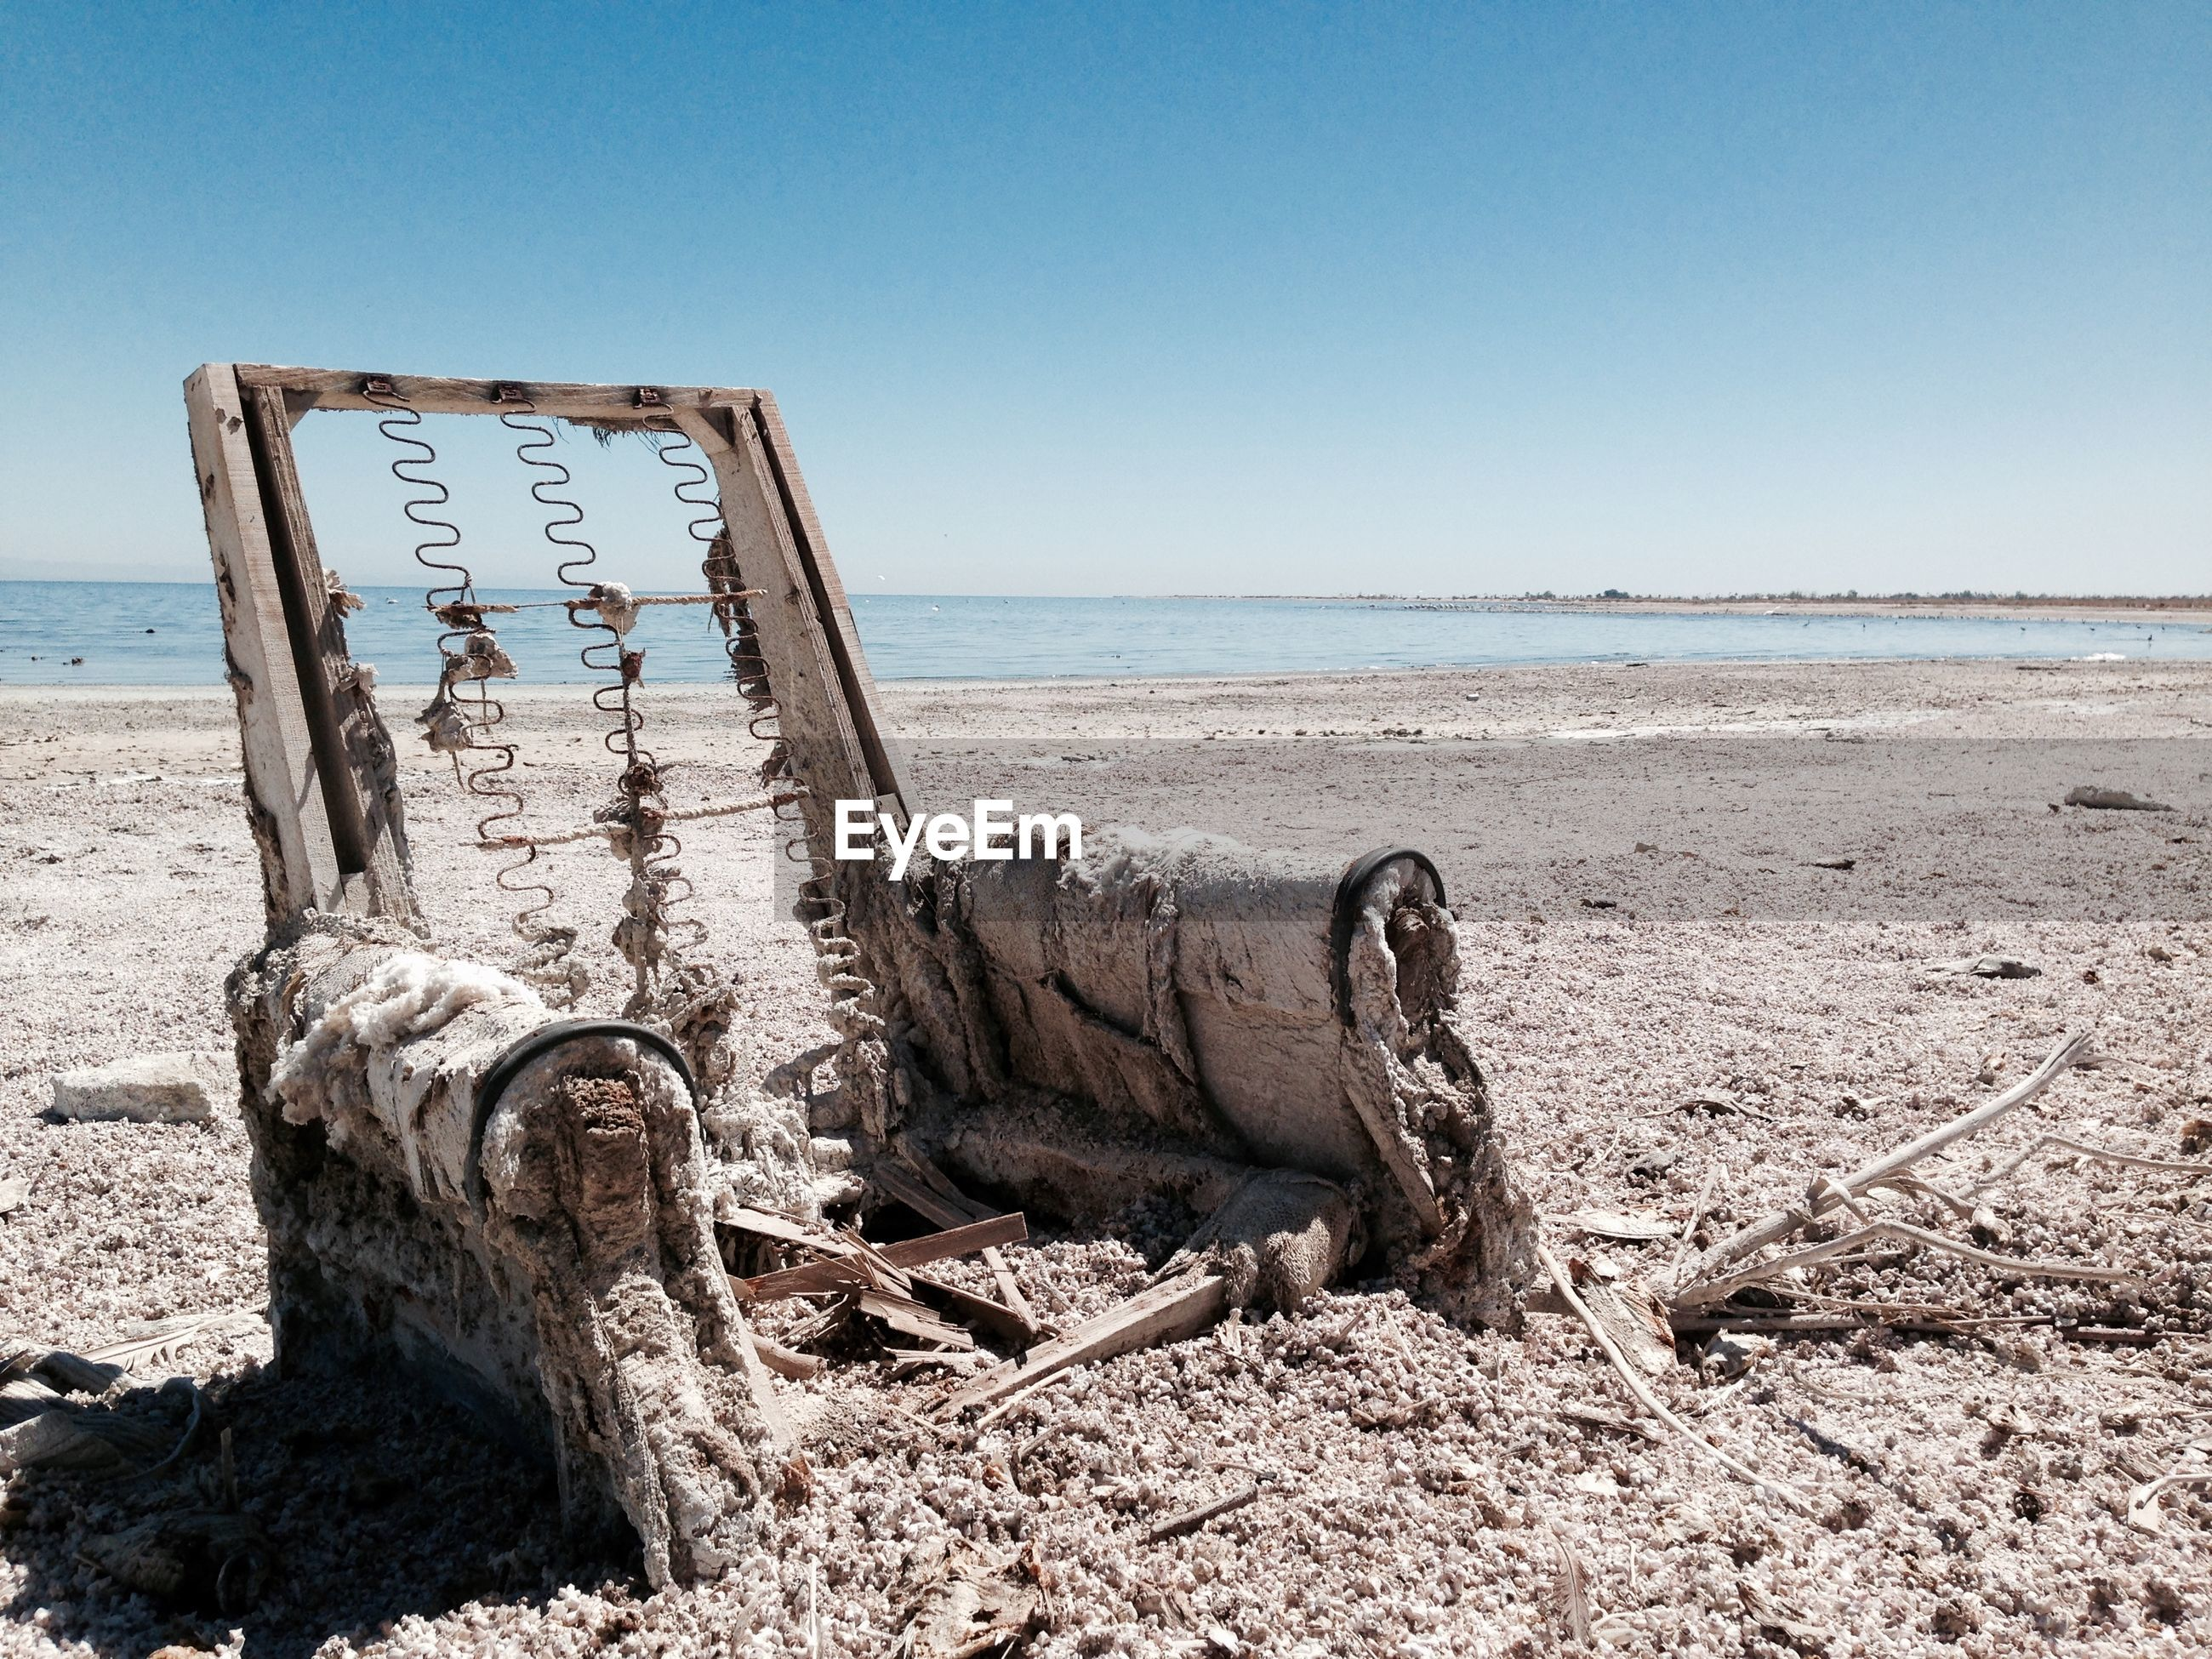 Abandoned weathered armchair at beach against sky